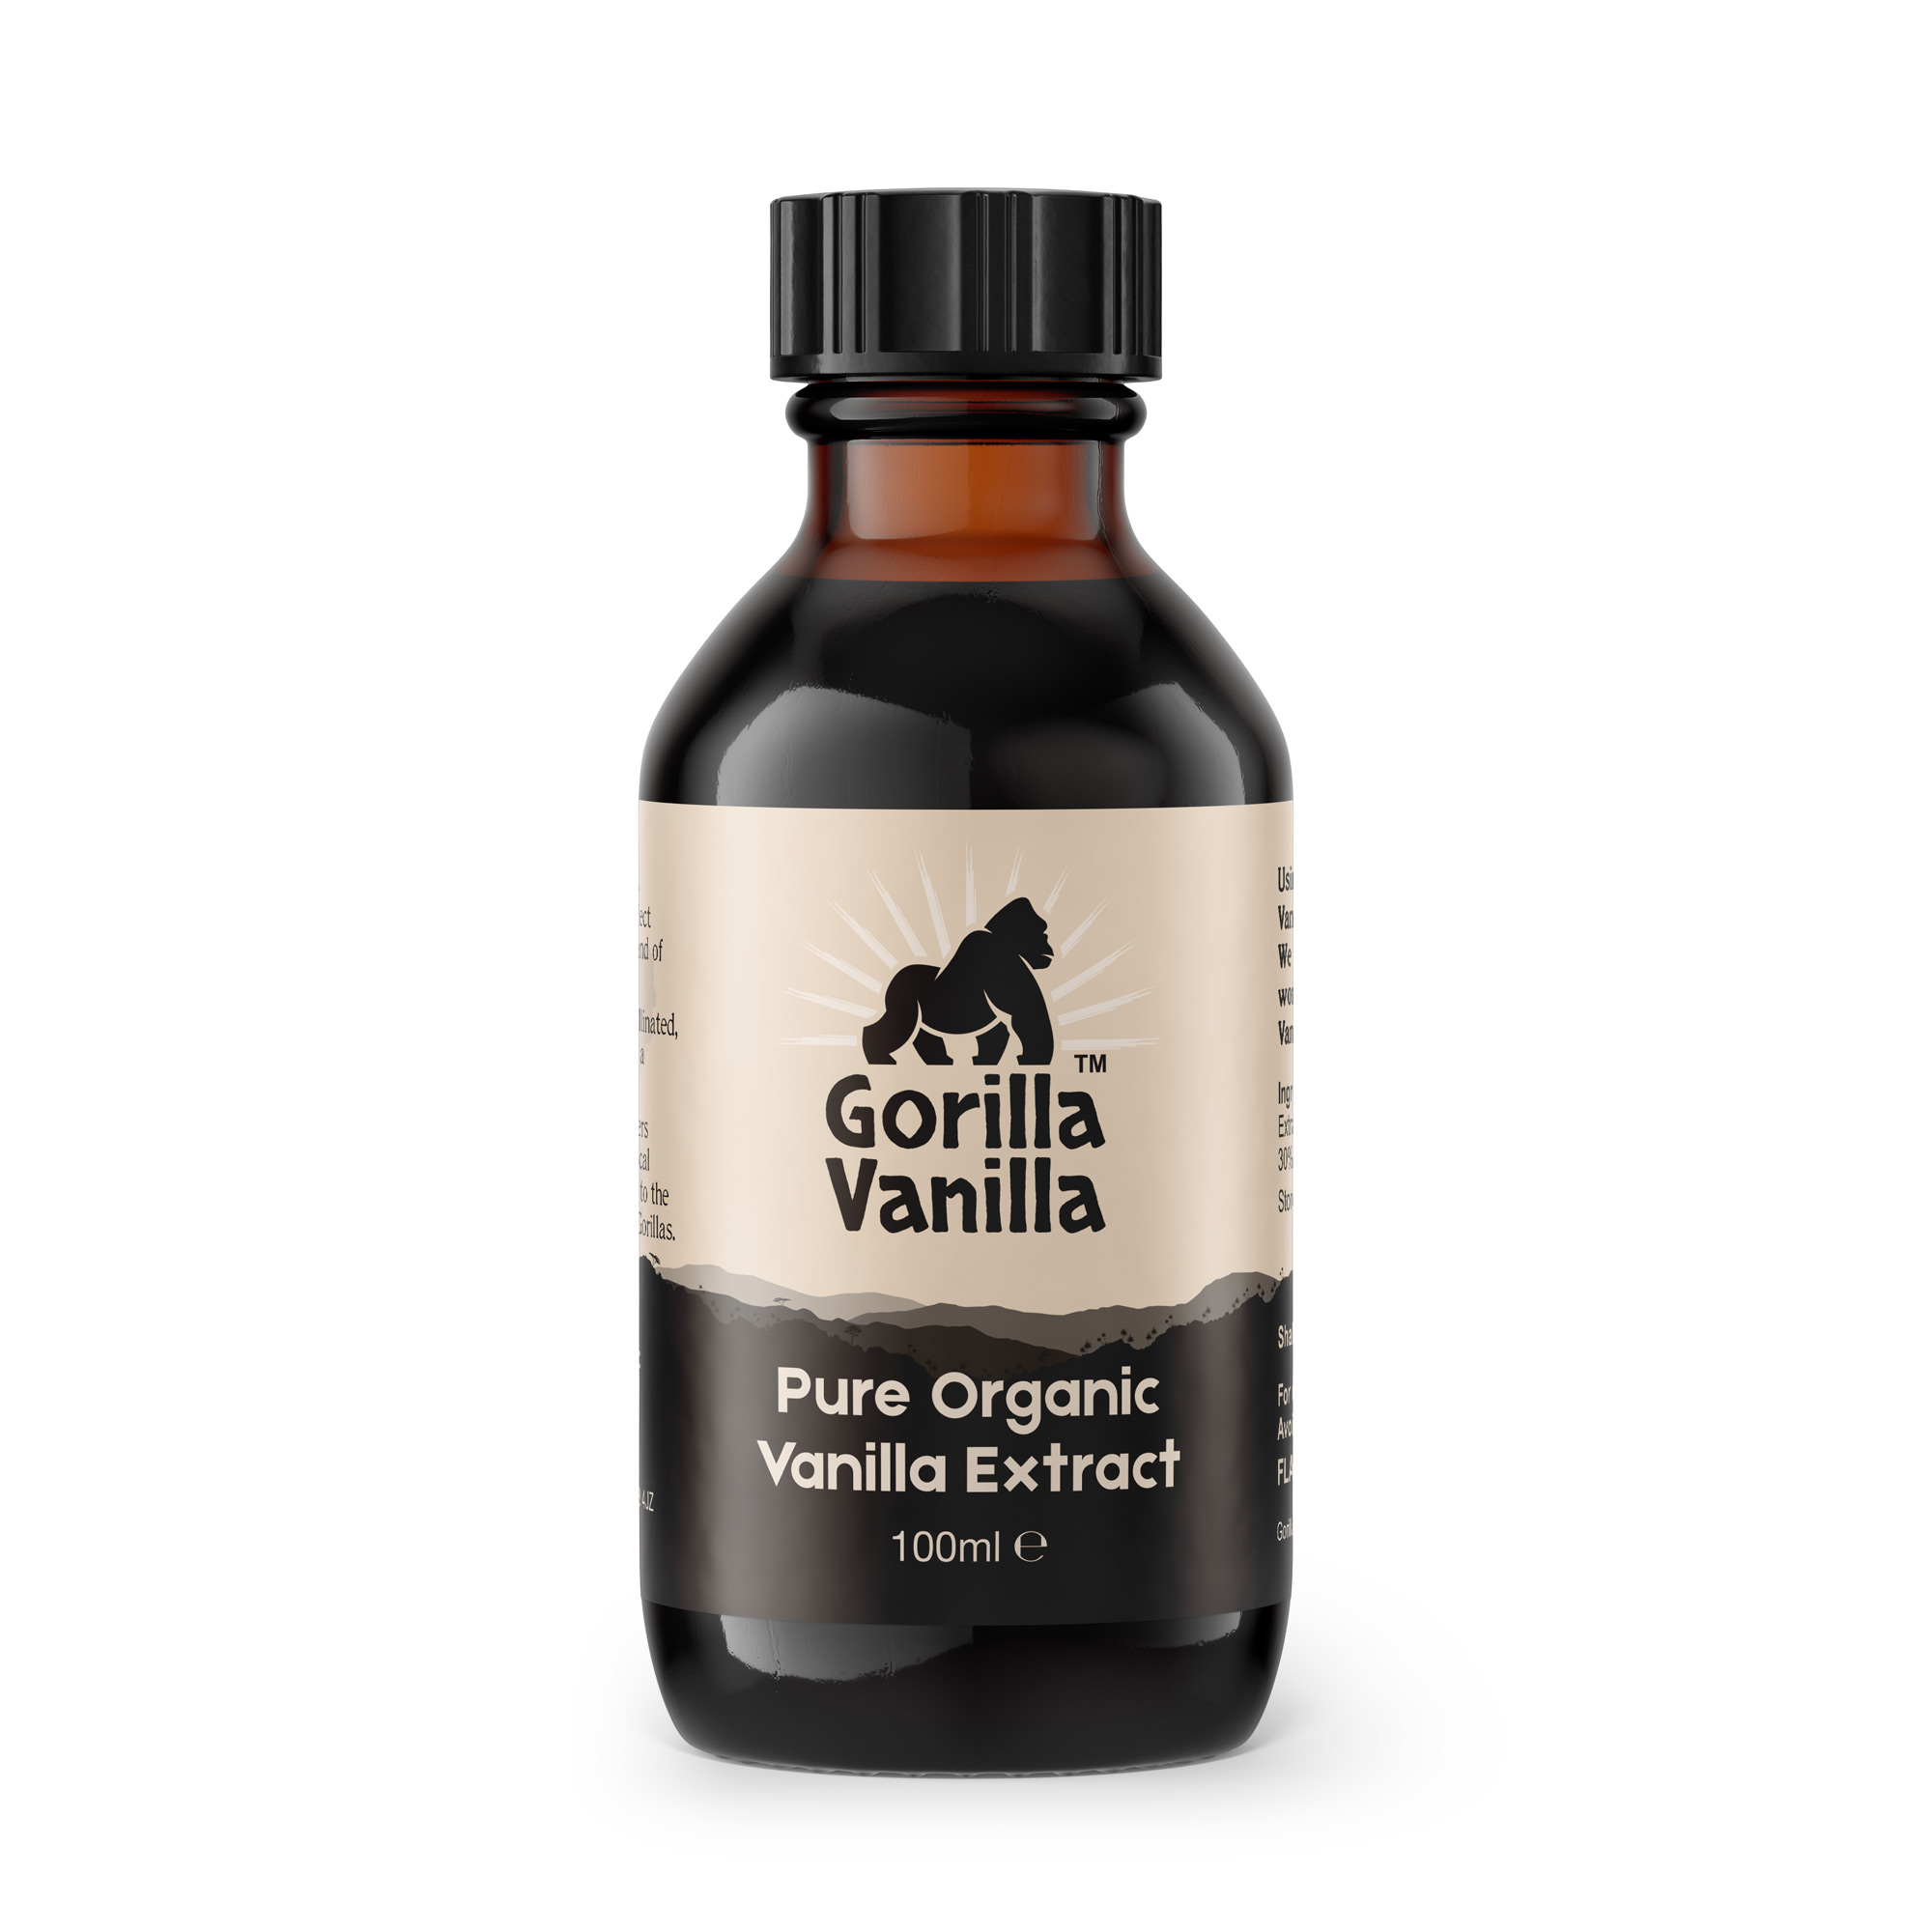 Gorilla Vanilla - Organic Vanilla Extract - 100ml Bottle